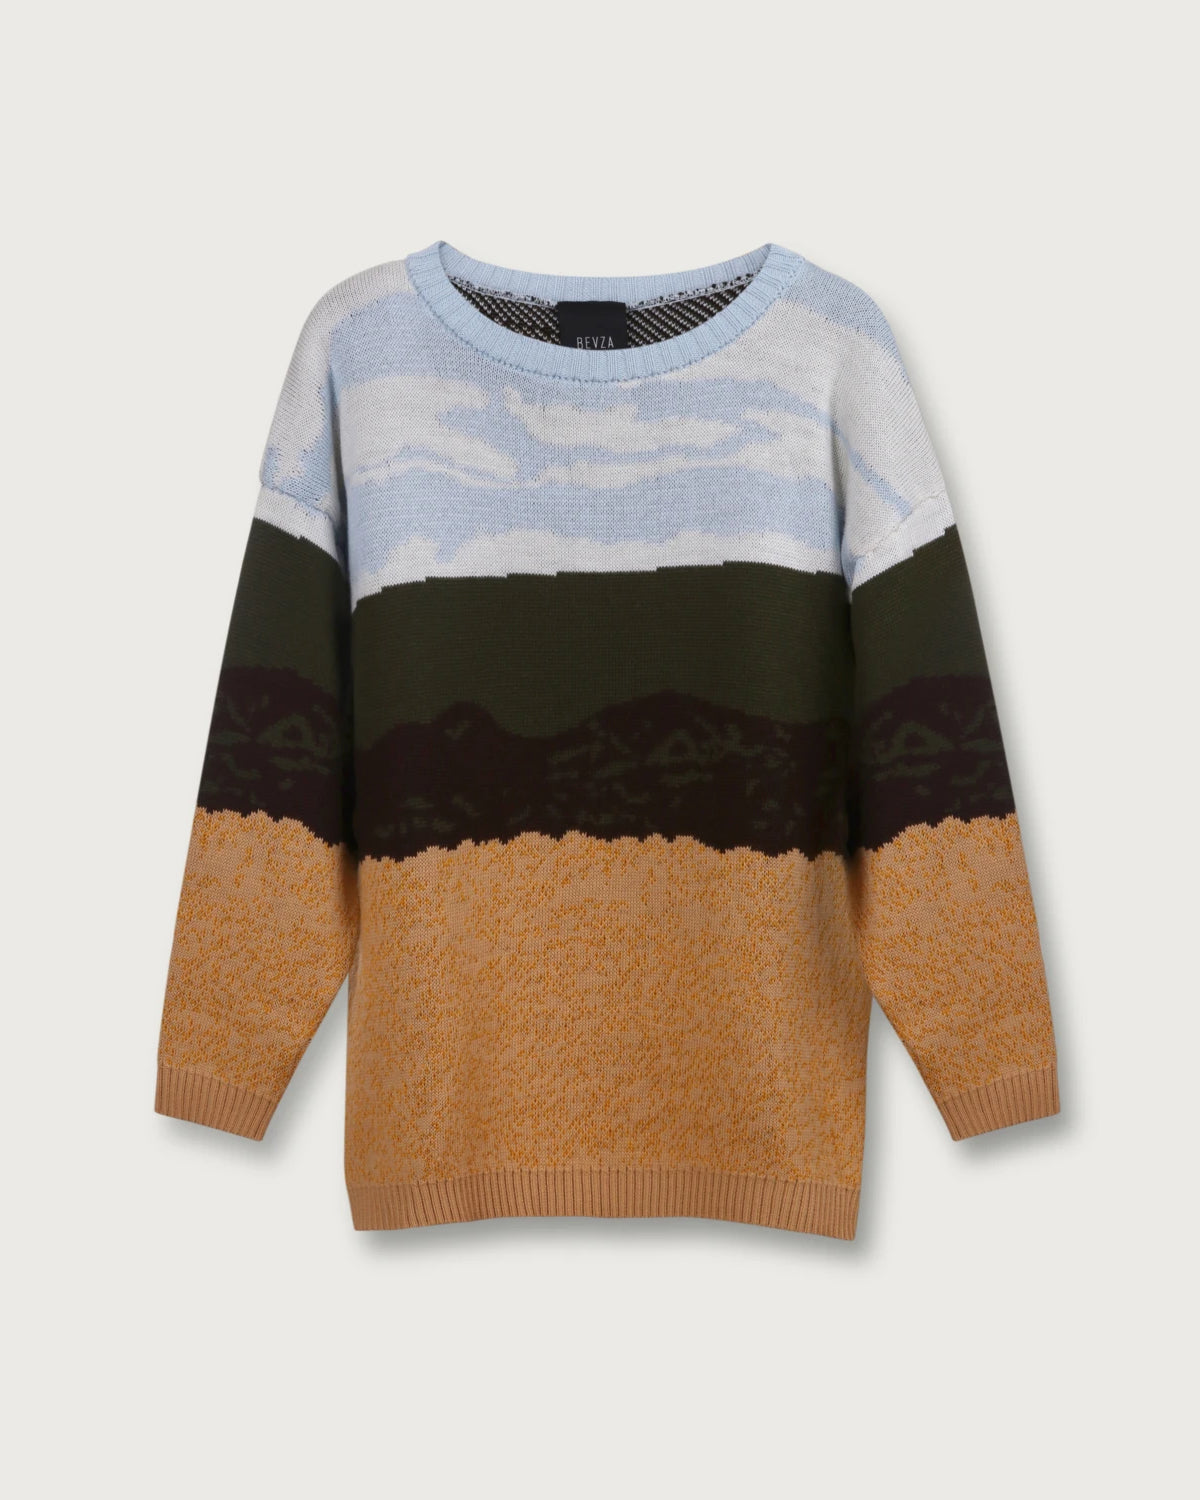 'Wheat field' crew-neck oversized sweater